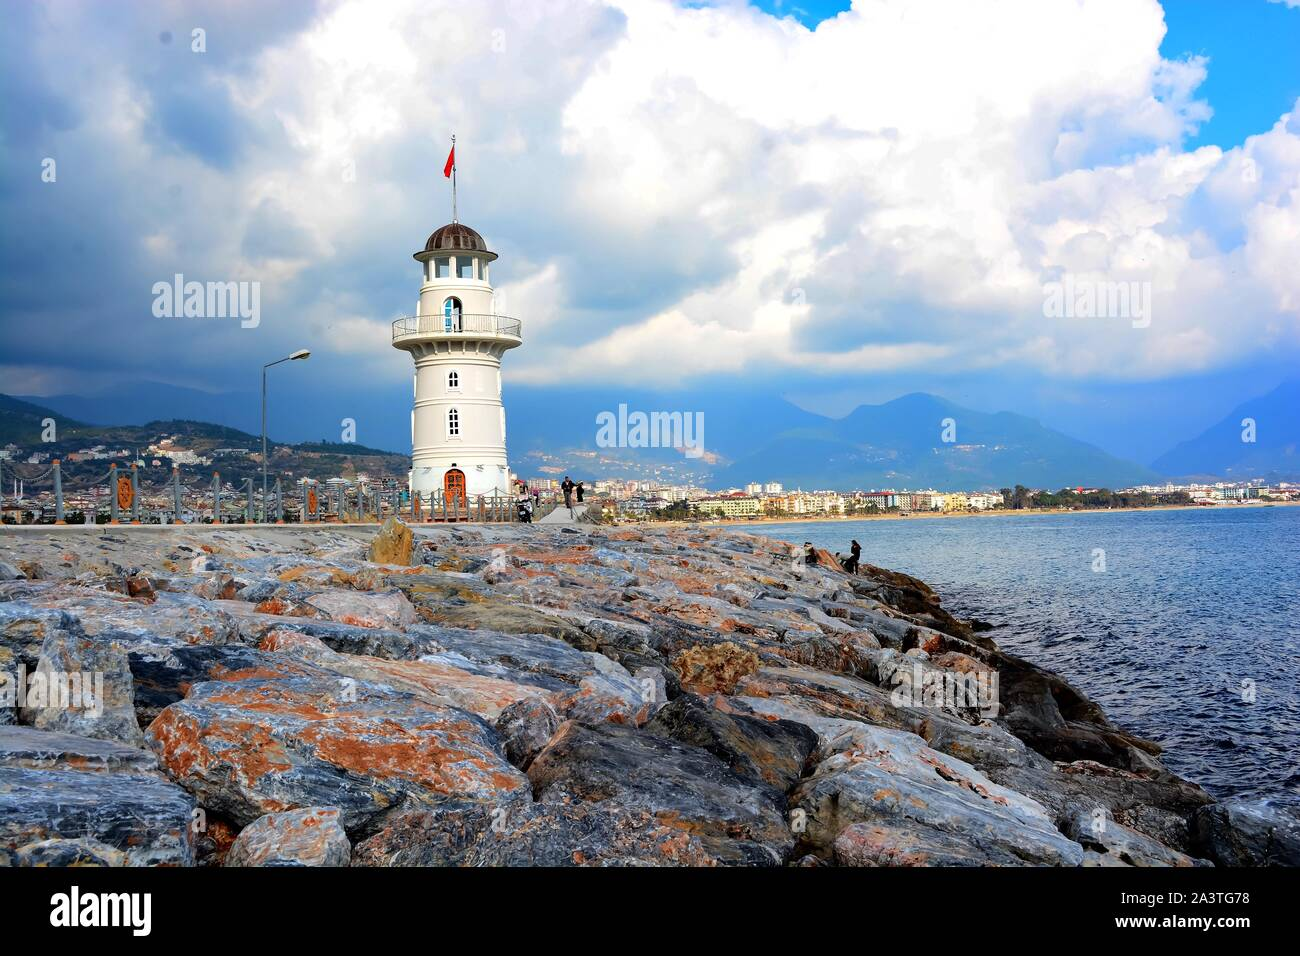 Alanya Harbour in early Spring before the new season starts. Boats are being refurbed & lovers attach locks to the harbour barriers to show their love Stock Photo